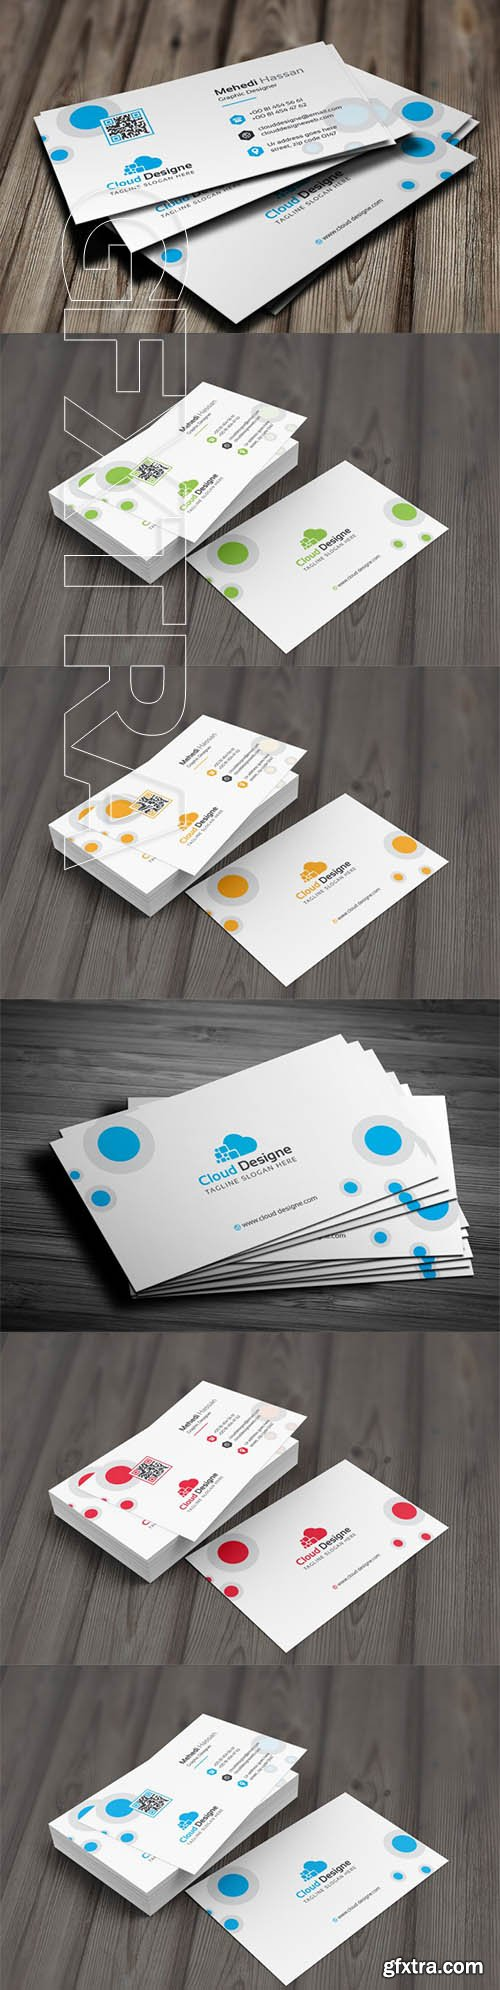 Corporate Business Card v12